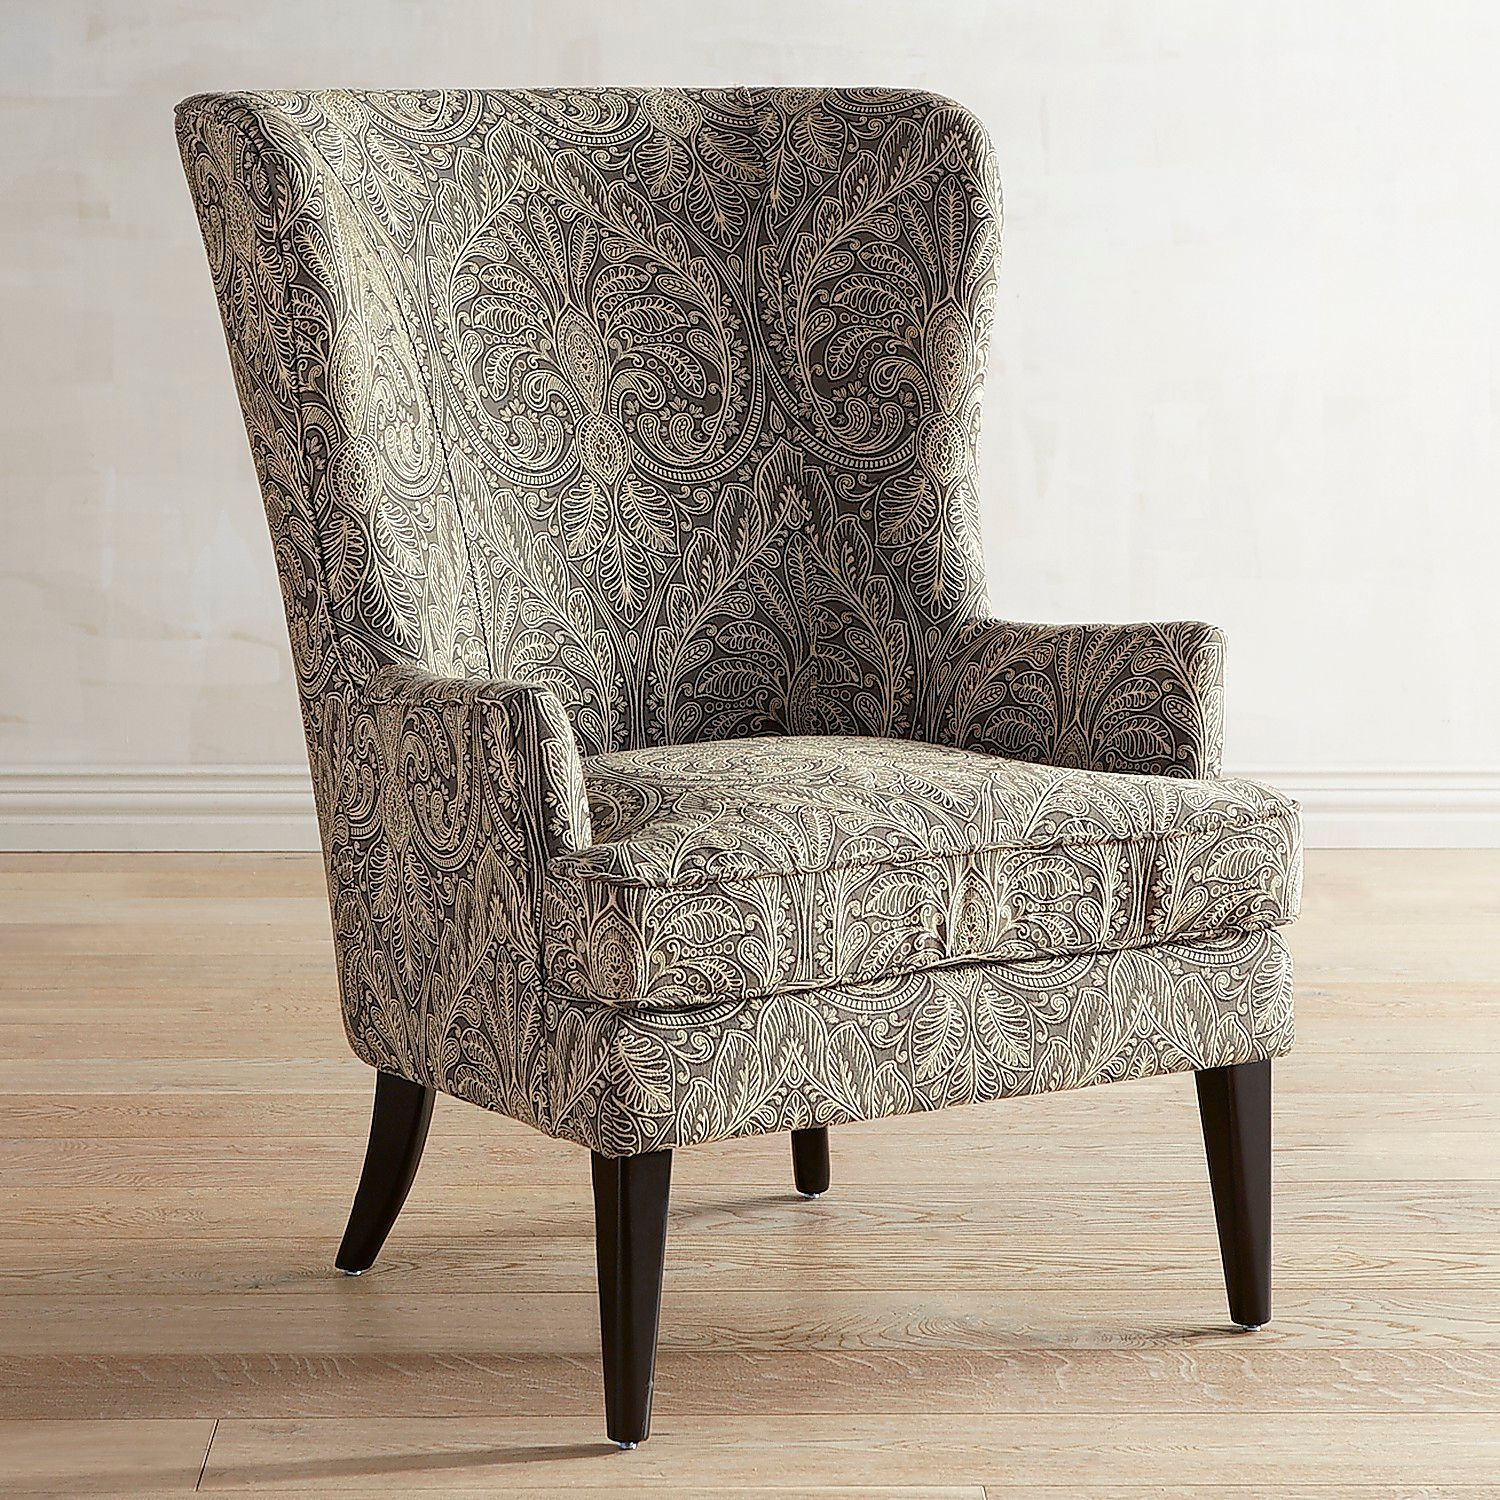 Asher Verse Nailhead Trim Ink Blue Chair Upholstered chairs